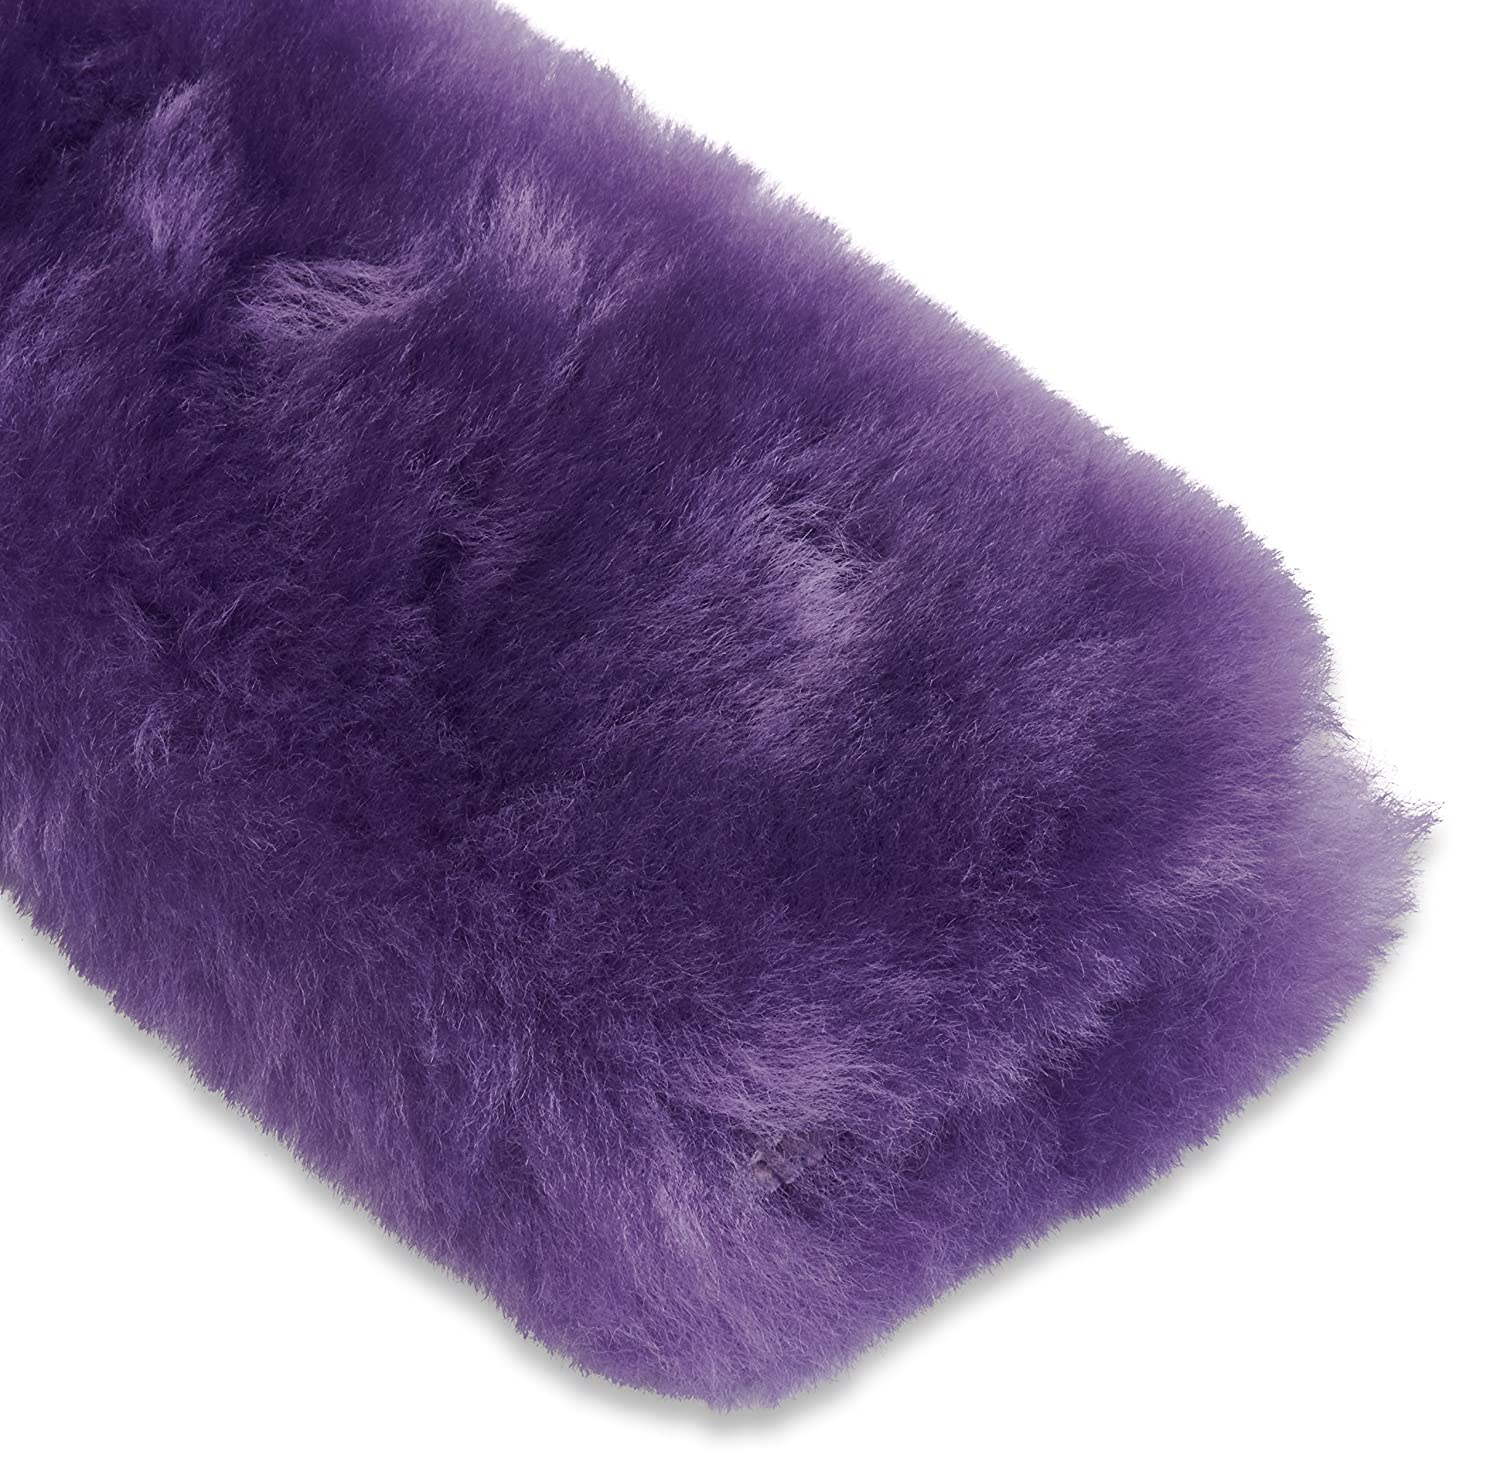 ANDALUS Seat Belt Covers for Adults Authentic Sheepskin Merino Wool Purple